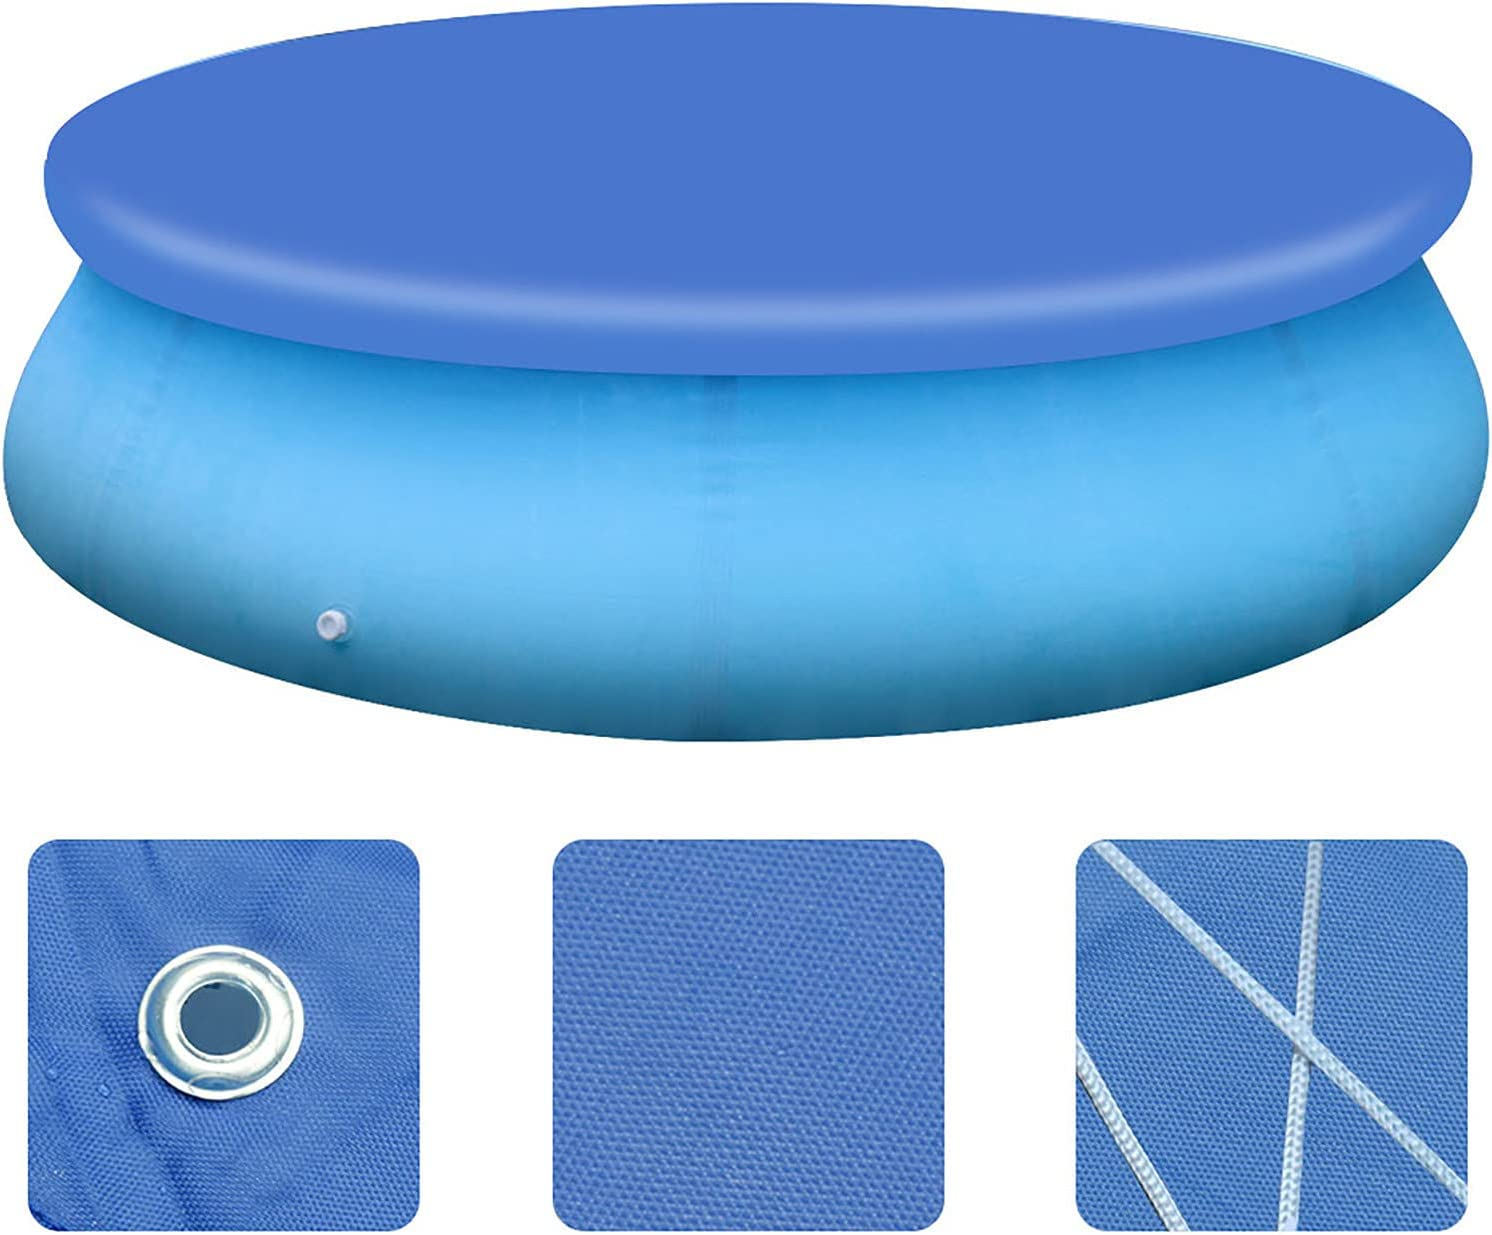 Dust Pool Cover 人気急上昇 Protector Solar Pools 10%OFF Round Frame Ea for